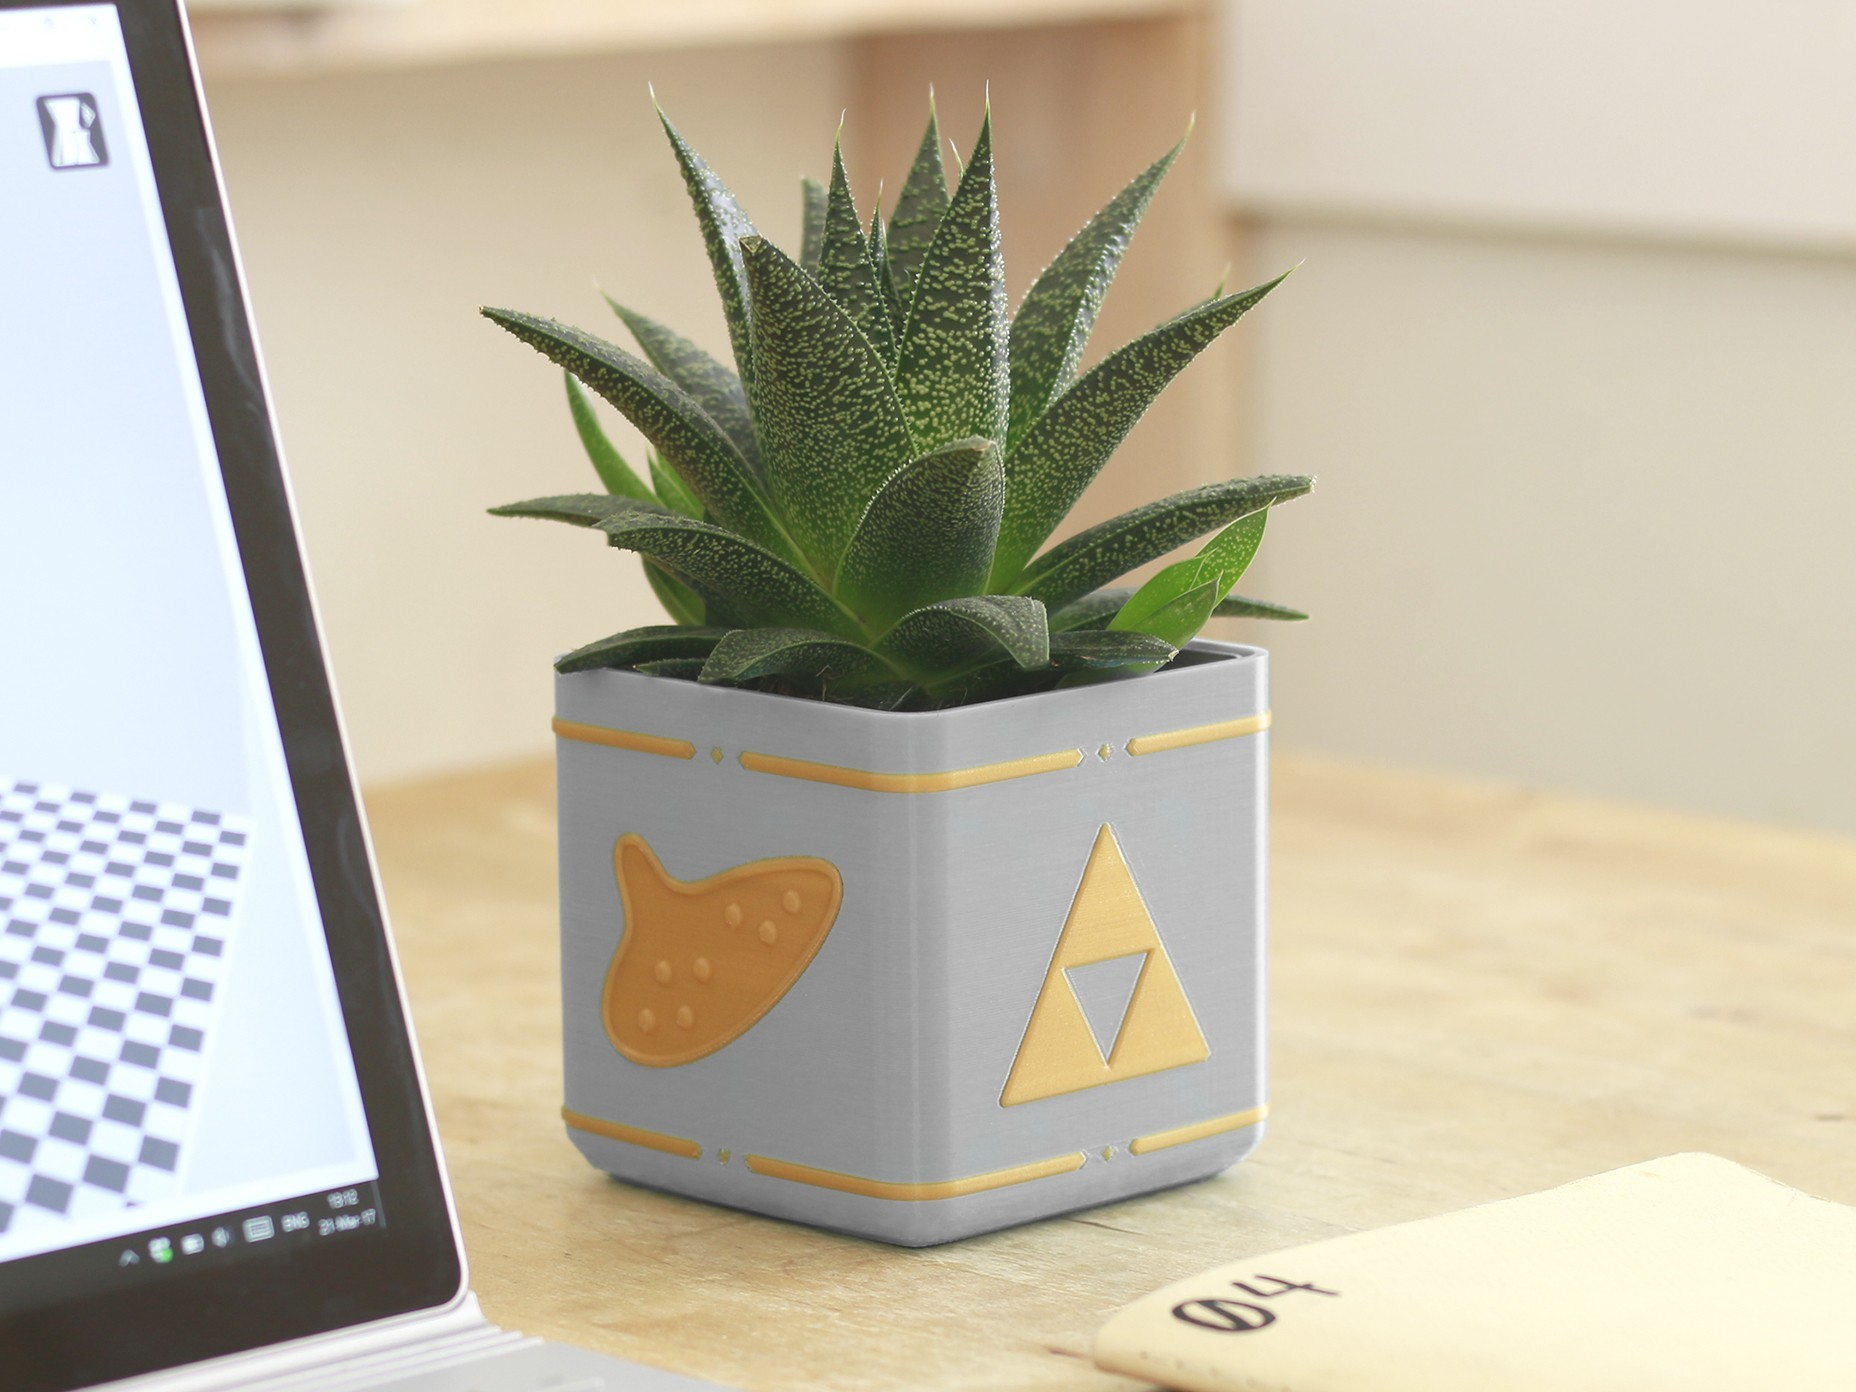 zelda_planter_thingiverse.jpg Download free STL file Video Game Planter Collection • Object to 3D print, flowalistik